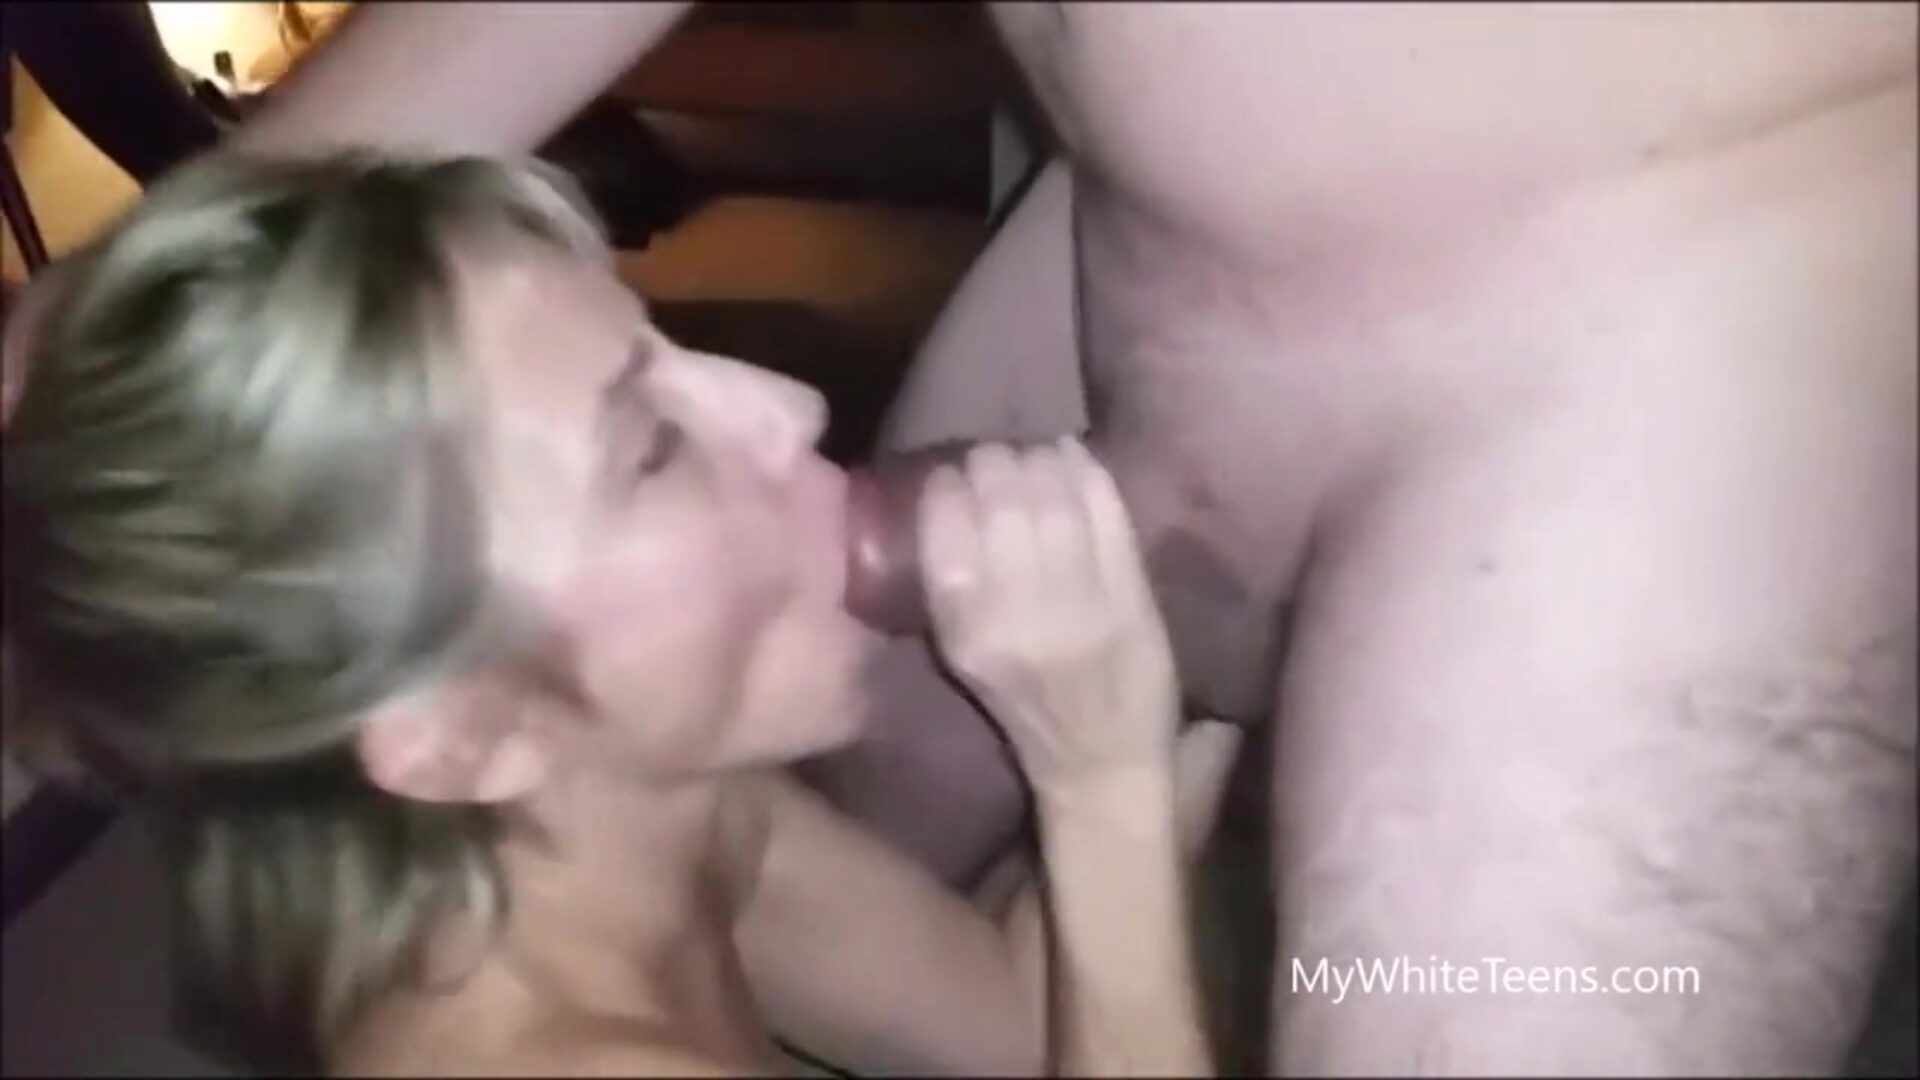 37yr senior MILF swallowing in front of spouse Pervert spouse letting his golden-haired mother I'd like to fuck swallow some guys blast